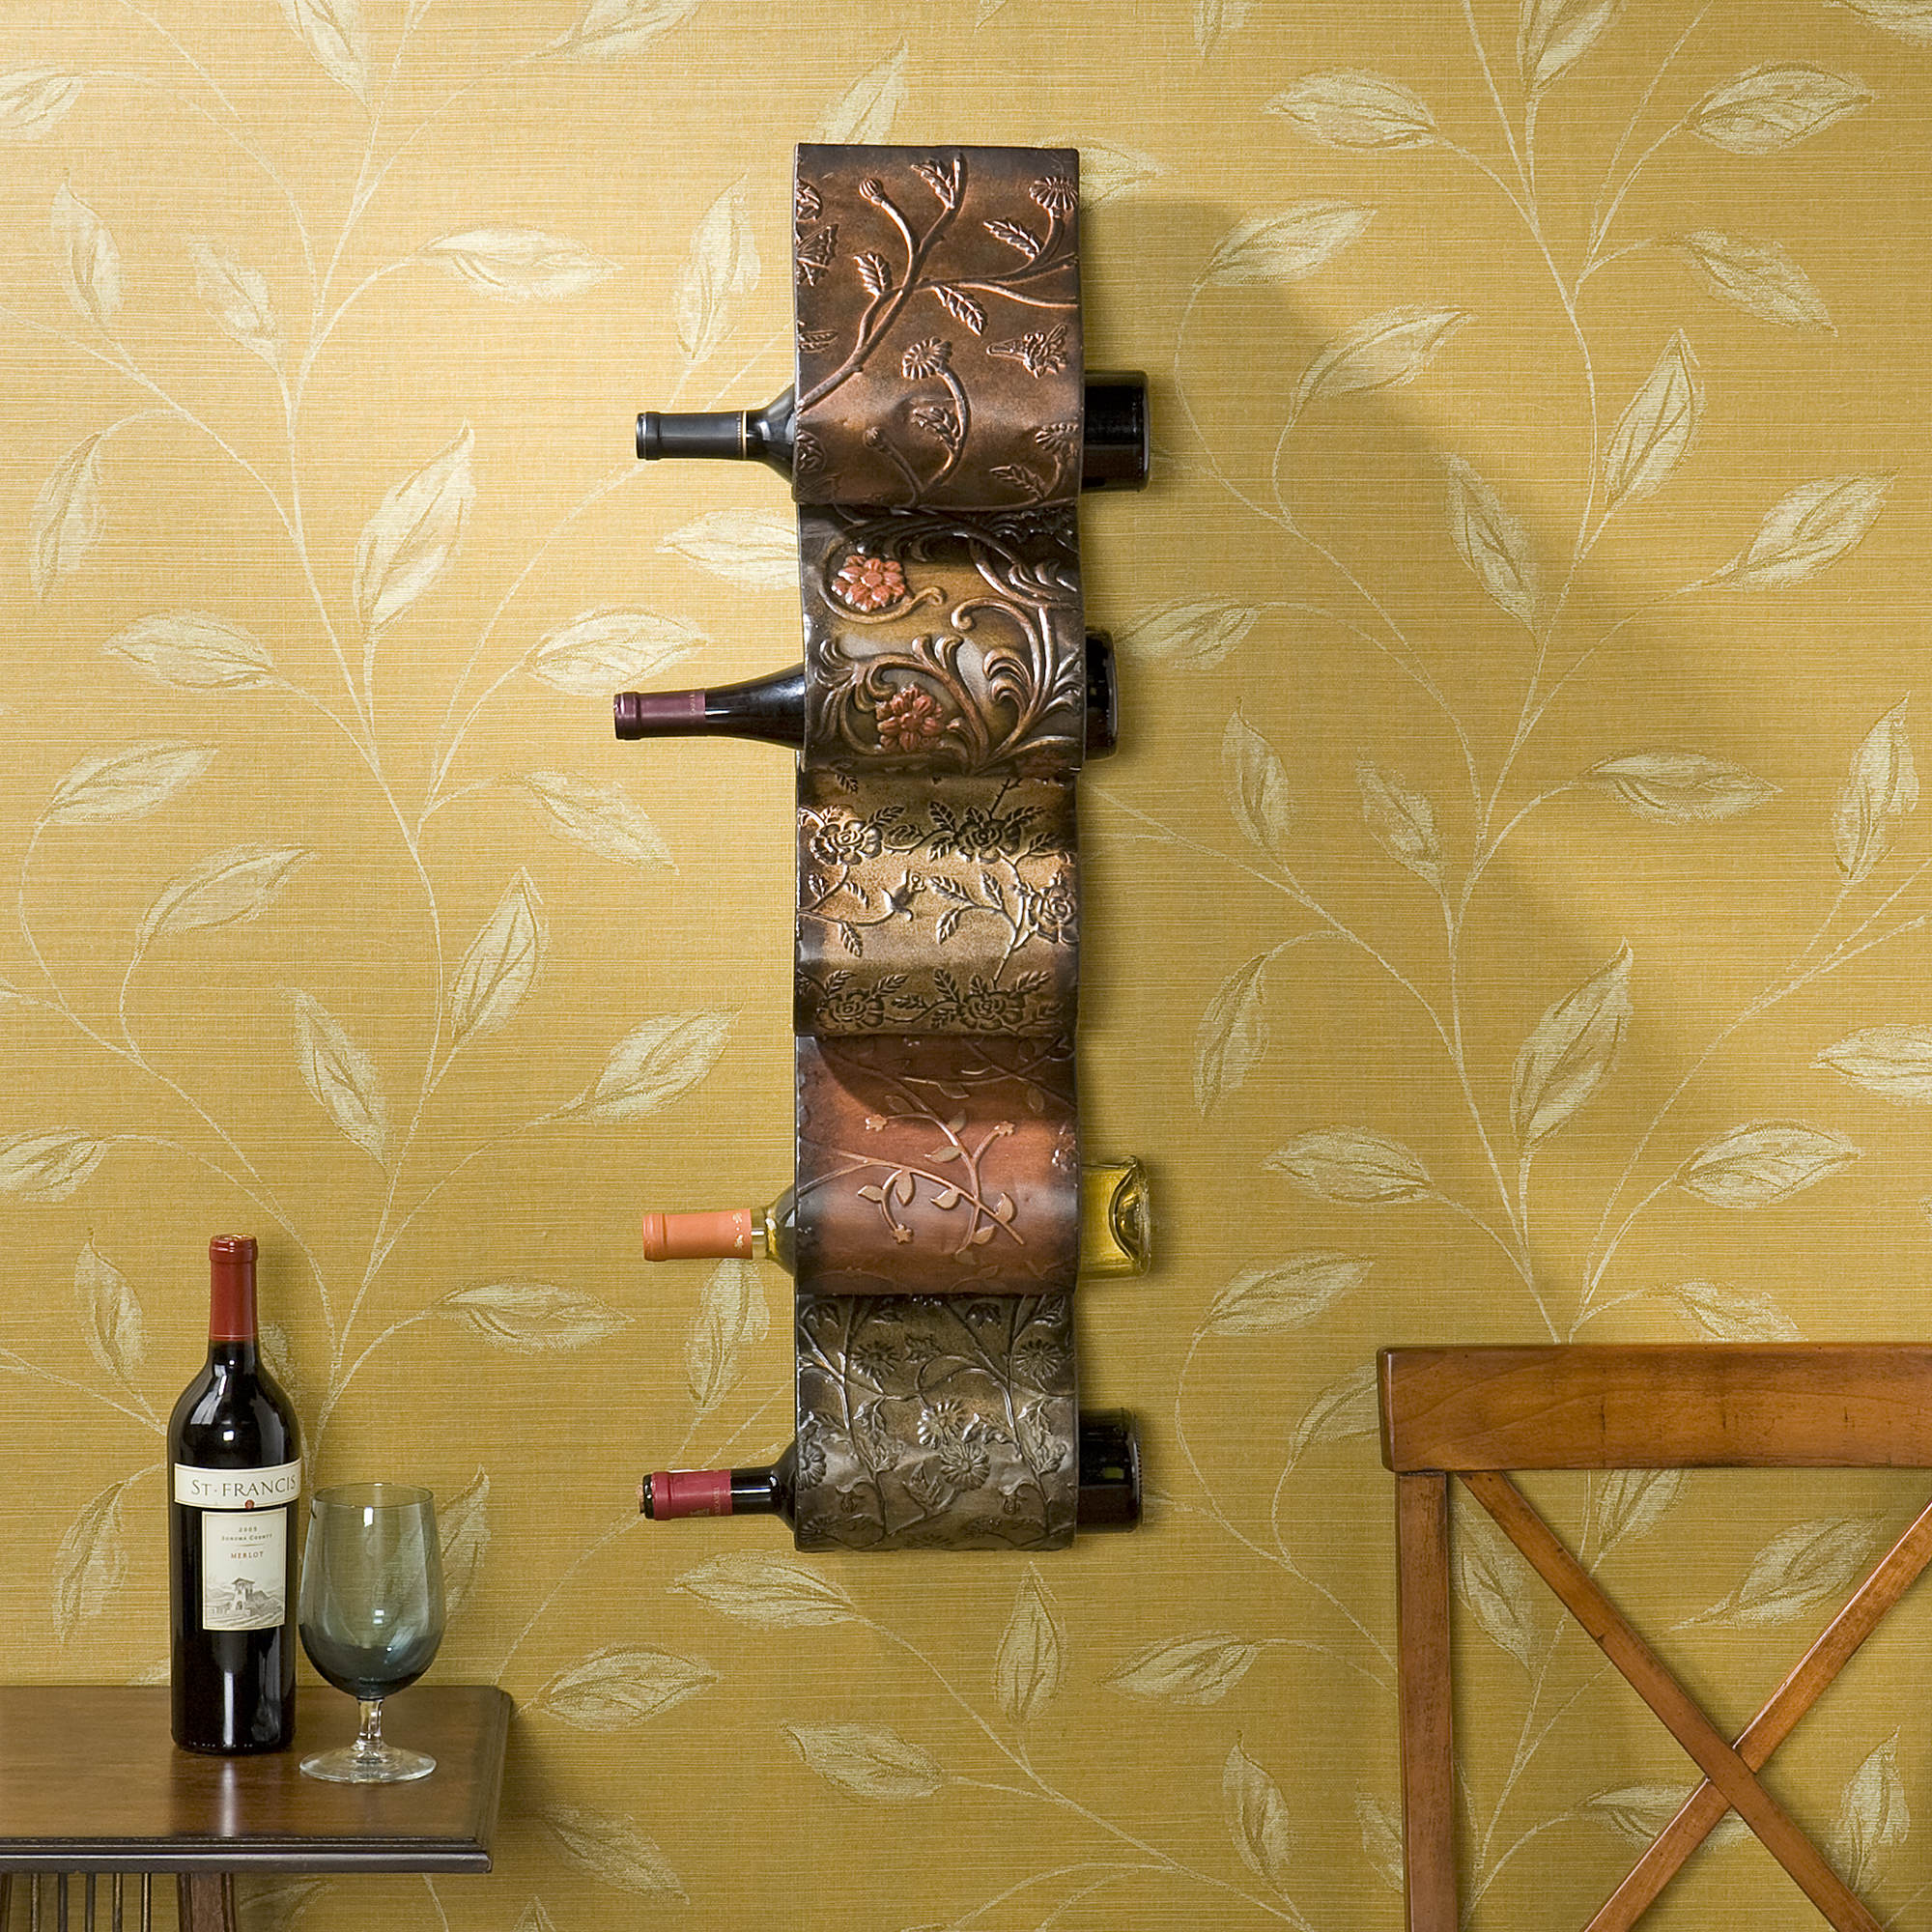 SEI Artistic 5-Bottle Wave Wall-Mount Wine Rack - Brown - BJs ...